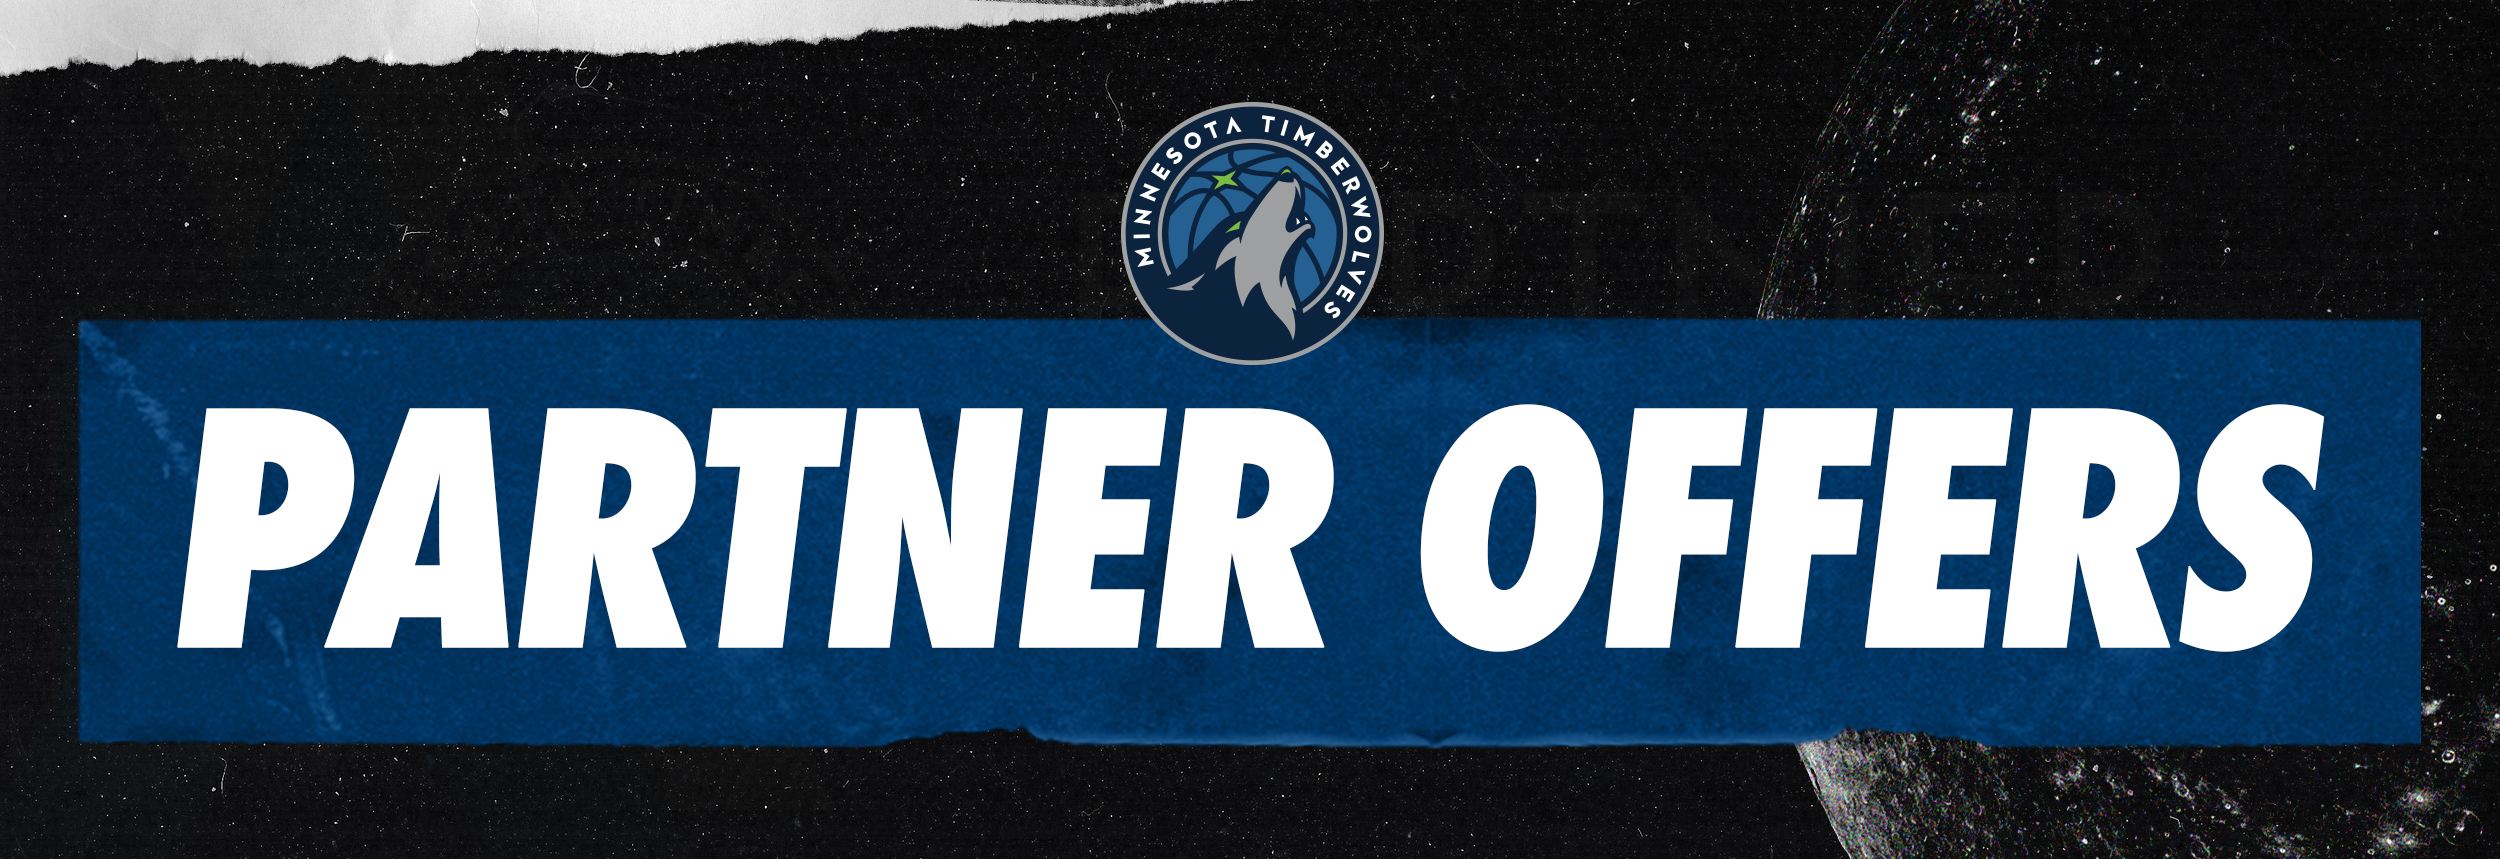 Timberwolves partner offer header